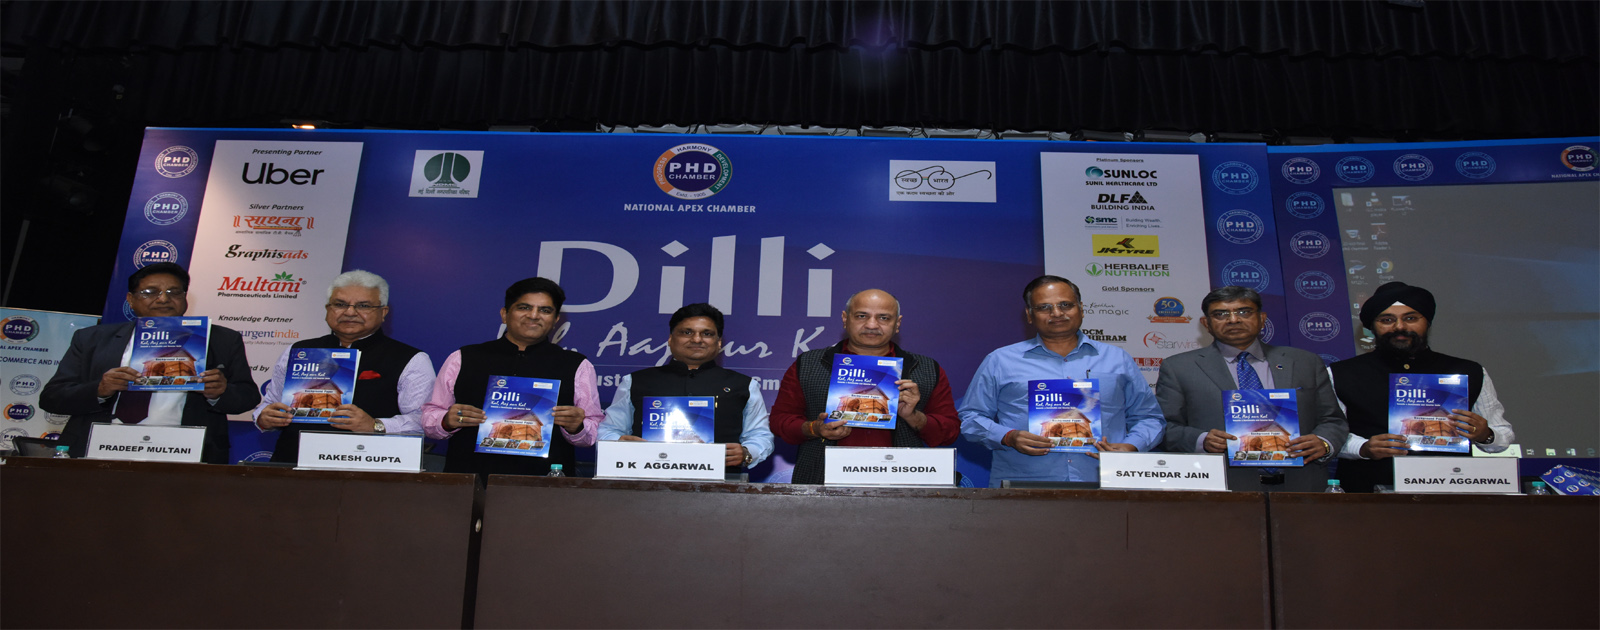 Dilli: Kal, Aaj aur Kal – Towards a Sustainable and Smarter Delhi